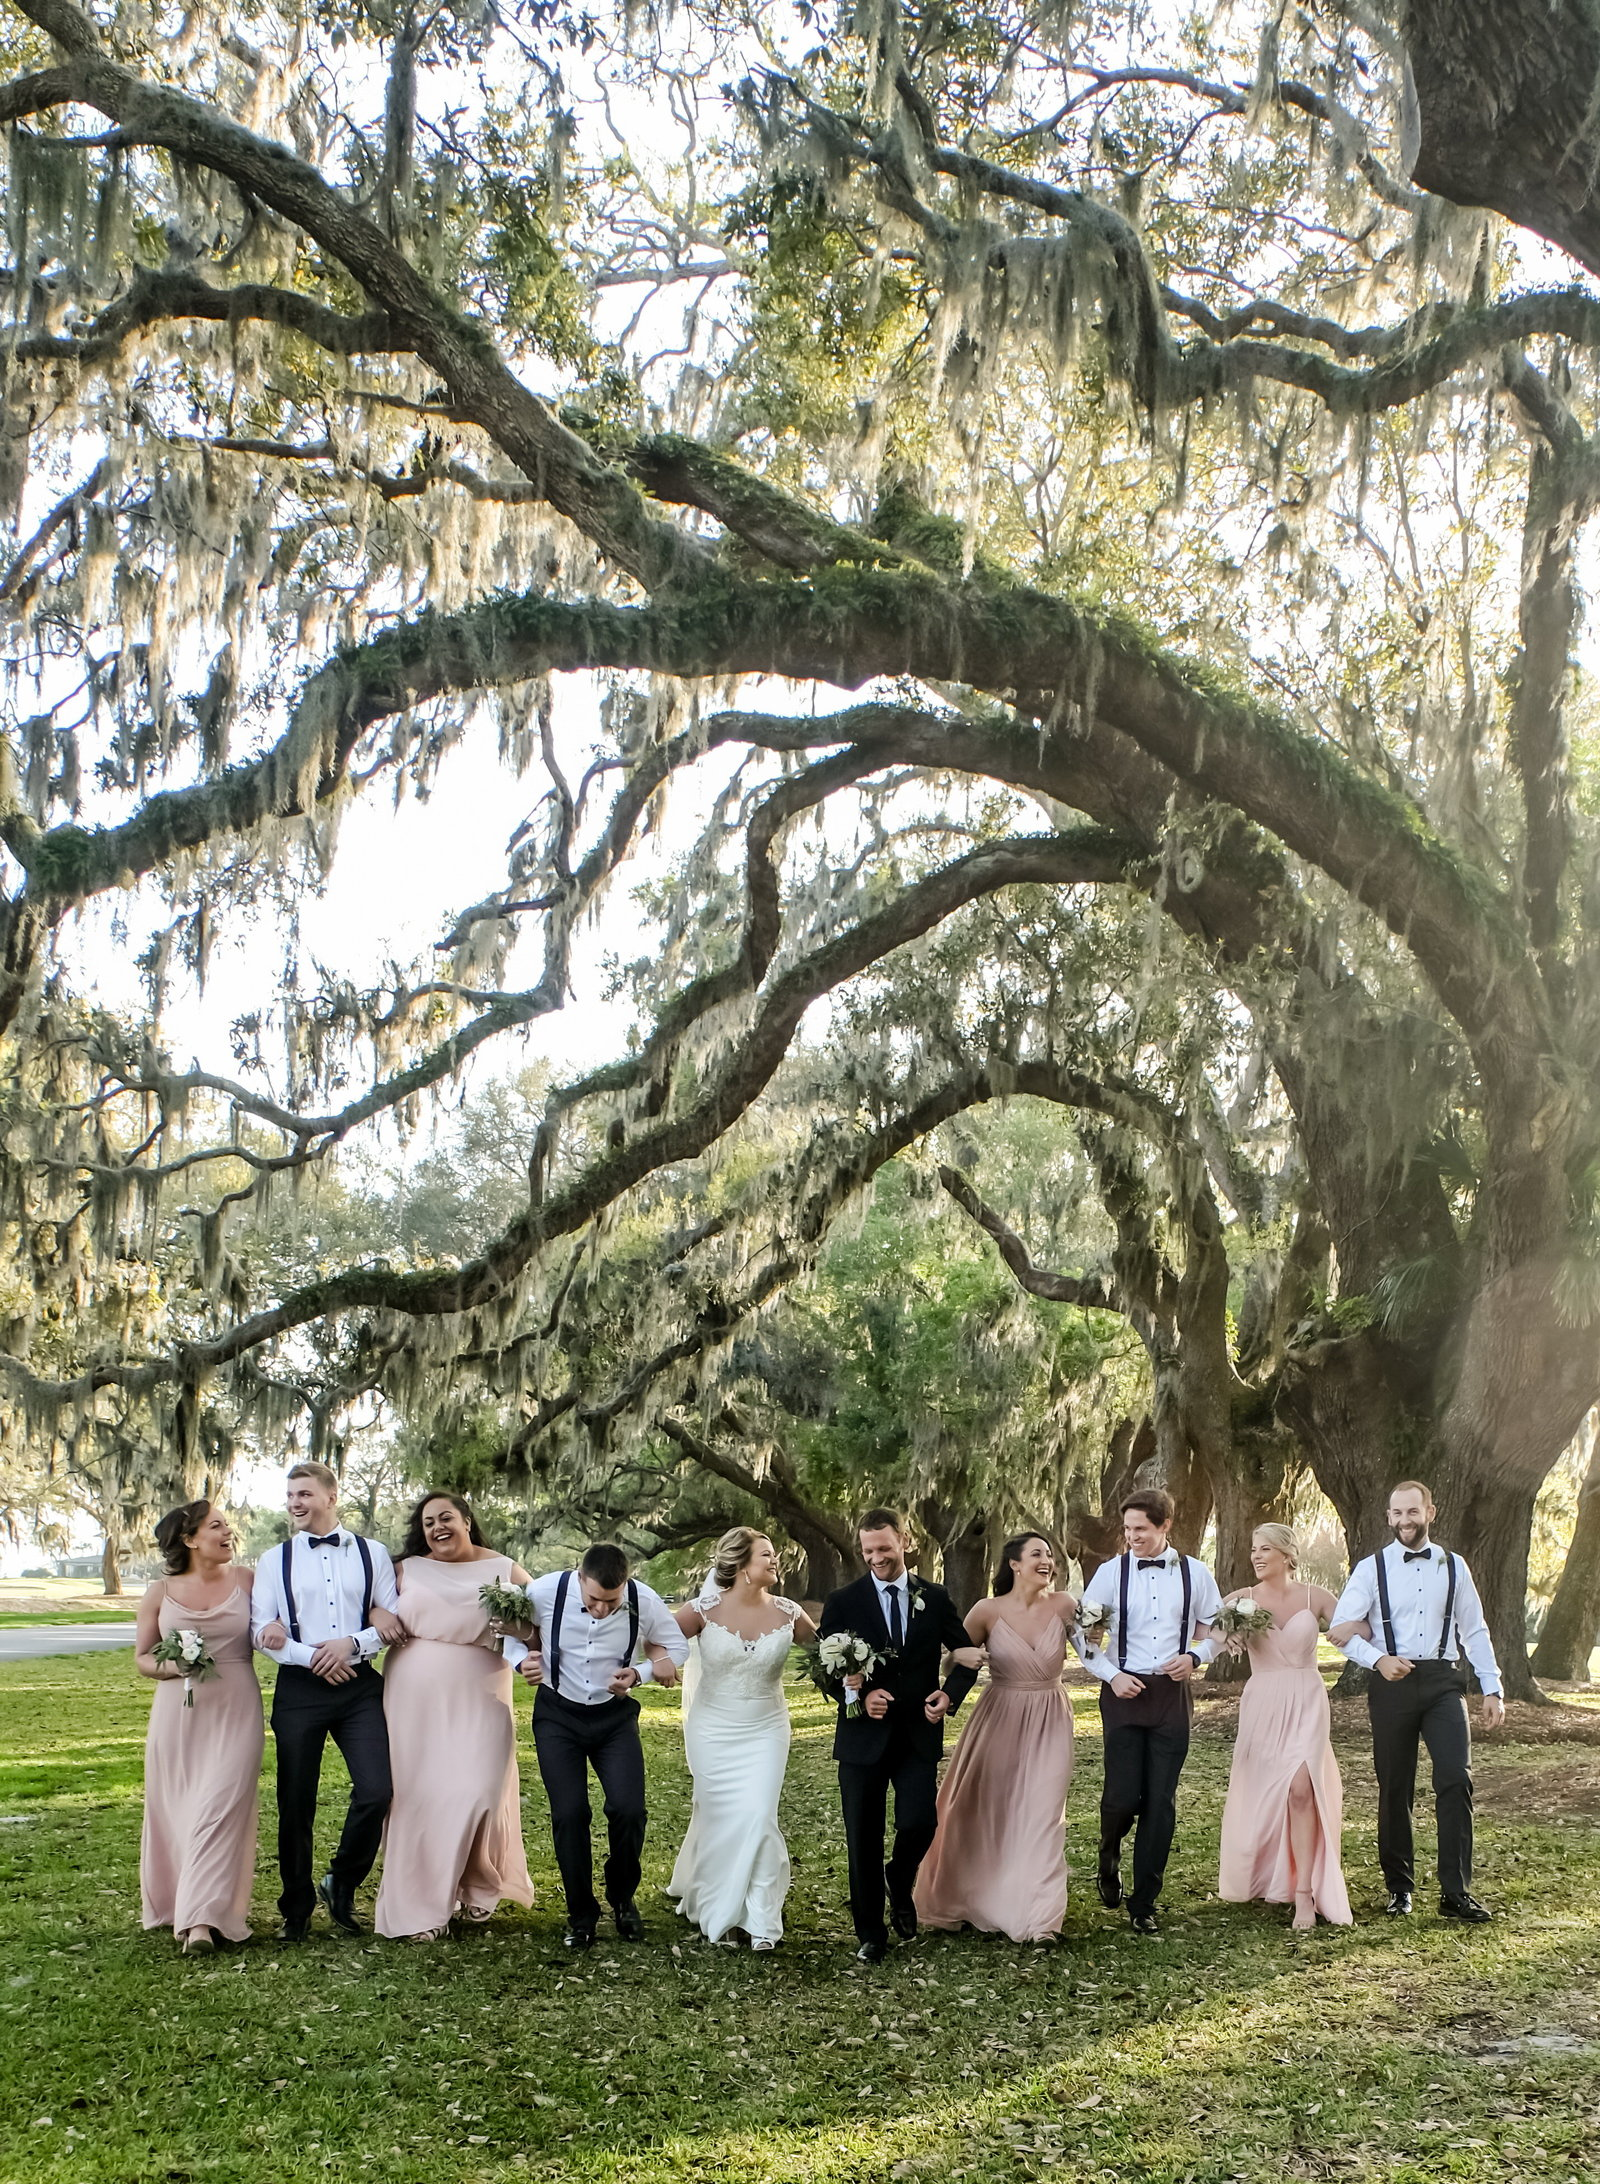 St. Simons Island Sea Palms Wedding, Bobbi Brinkman Photography